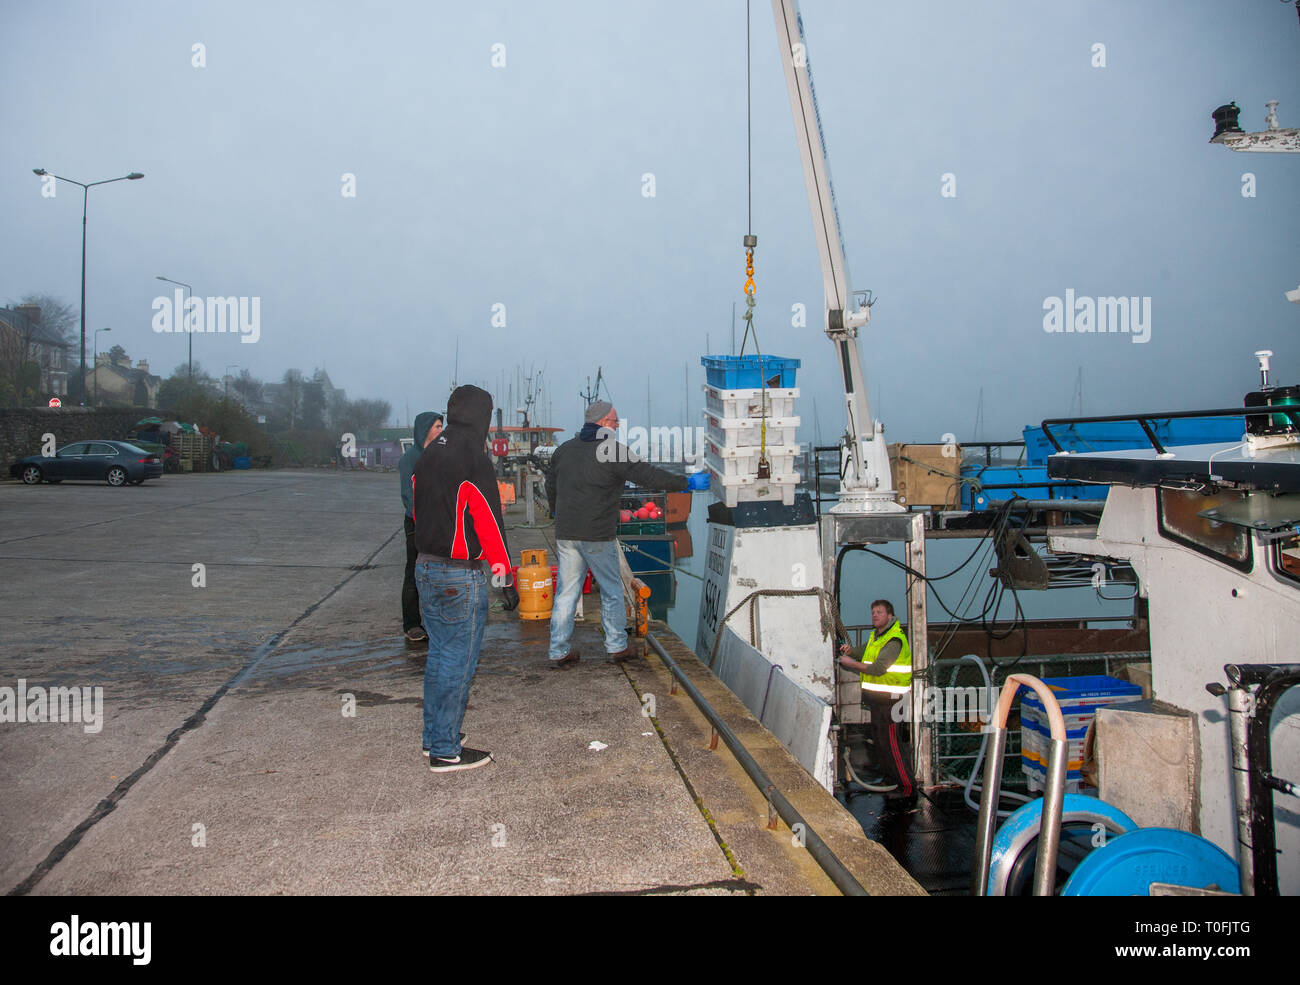 Crosshaven, Co. Cork, Ireland. 20th March, 2019. Crew of the fishing vessel Tricky Business offload their catch of Haddock and Hake on to the pier at Crosshaven, Co. Cork, Ireland. Credit: David Creedon/Alamy Live News - Stock Image